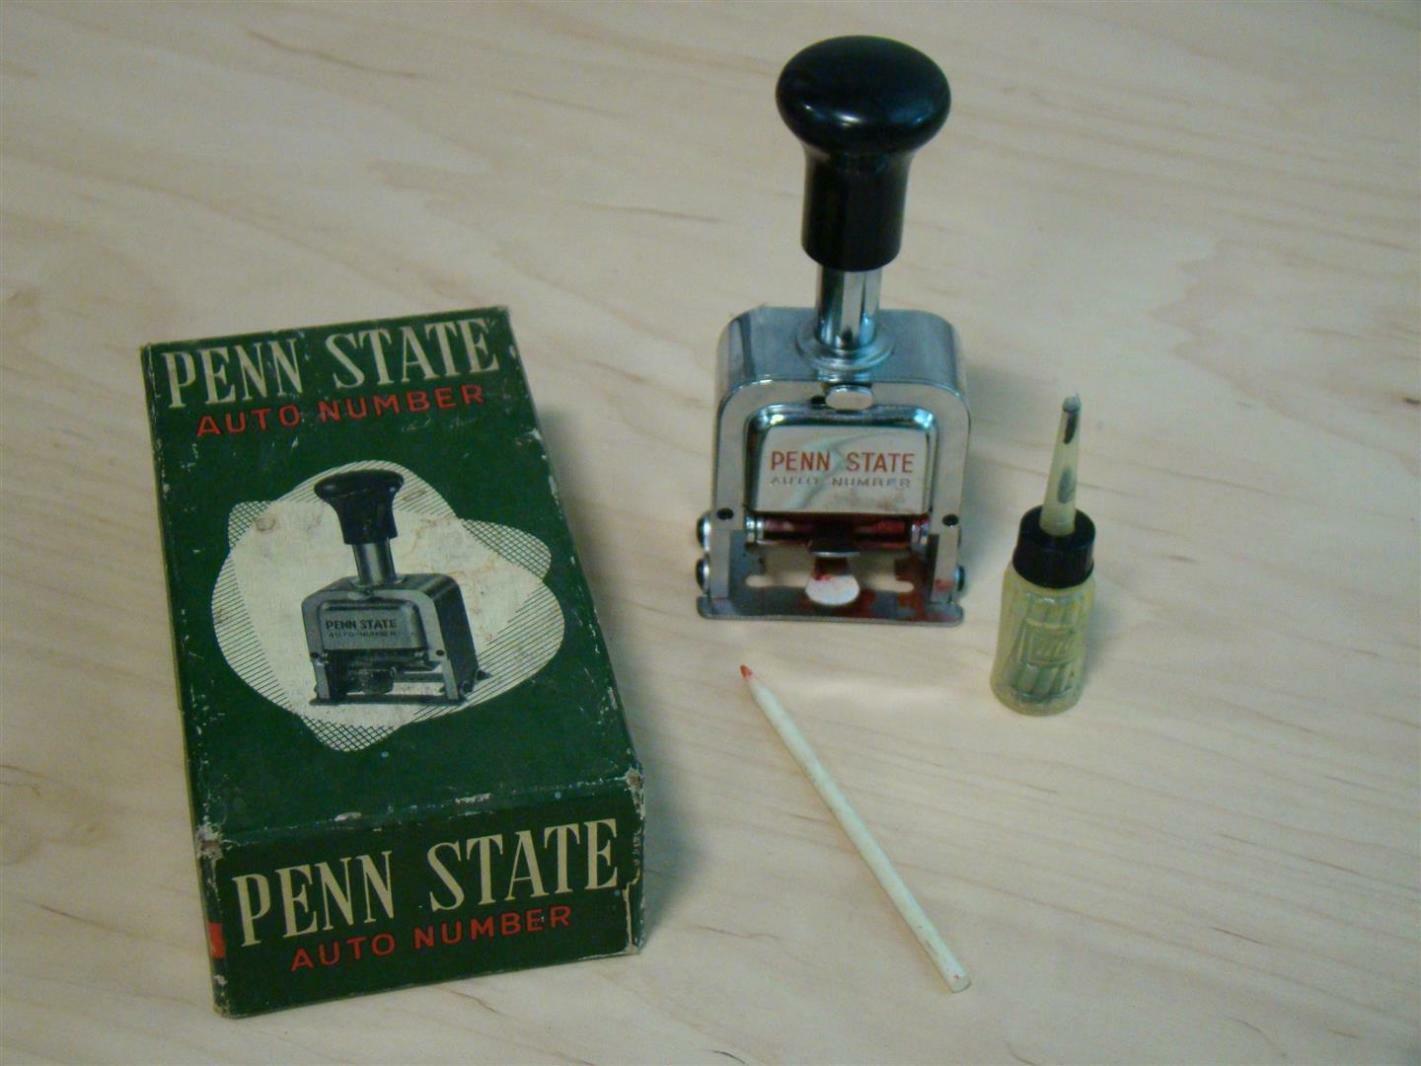 Penn State Auto Number stamp 607